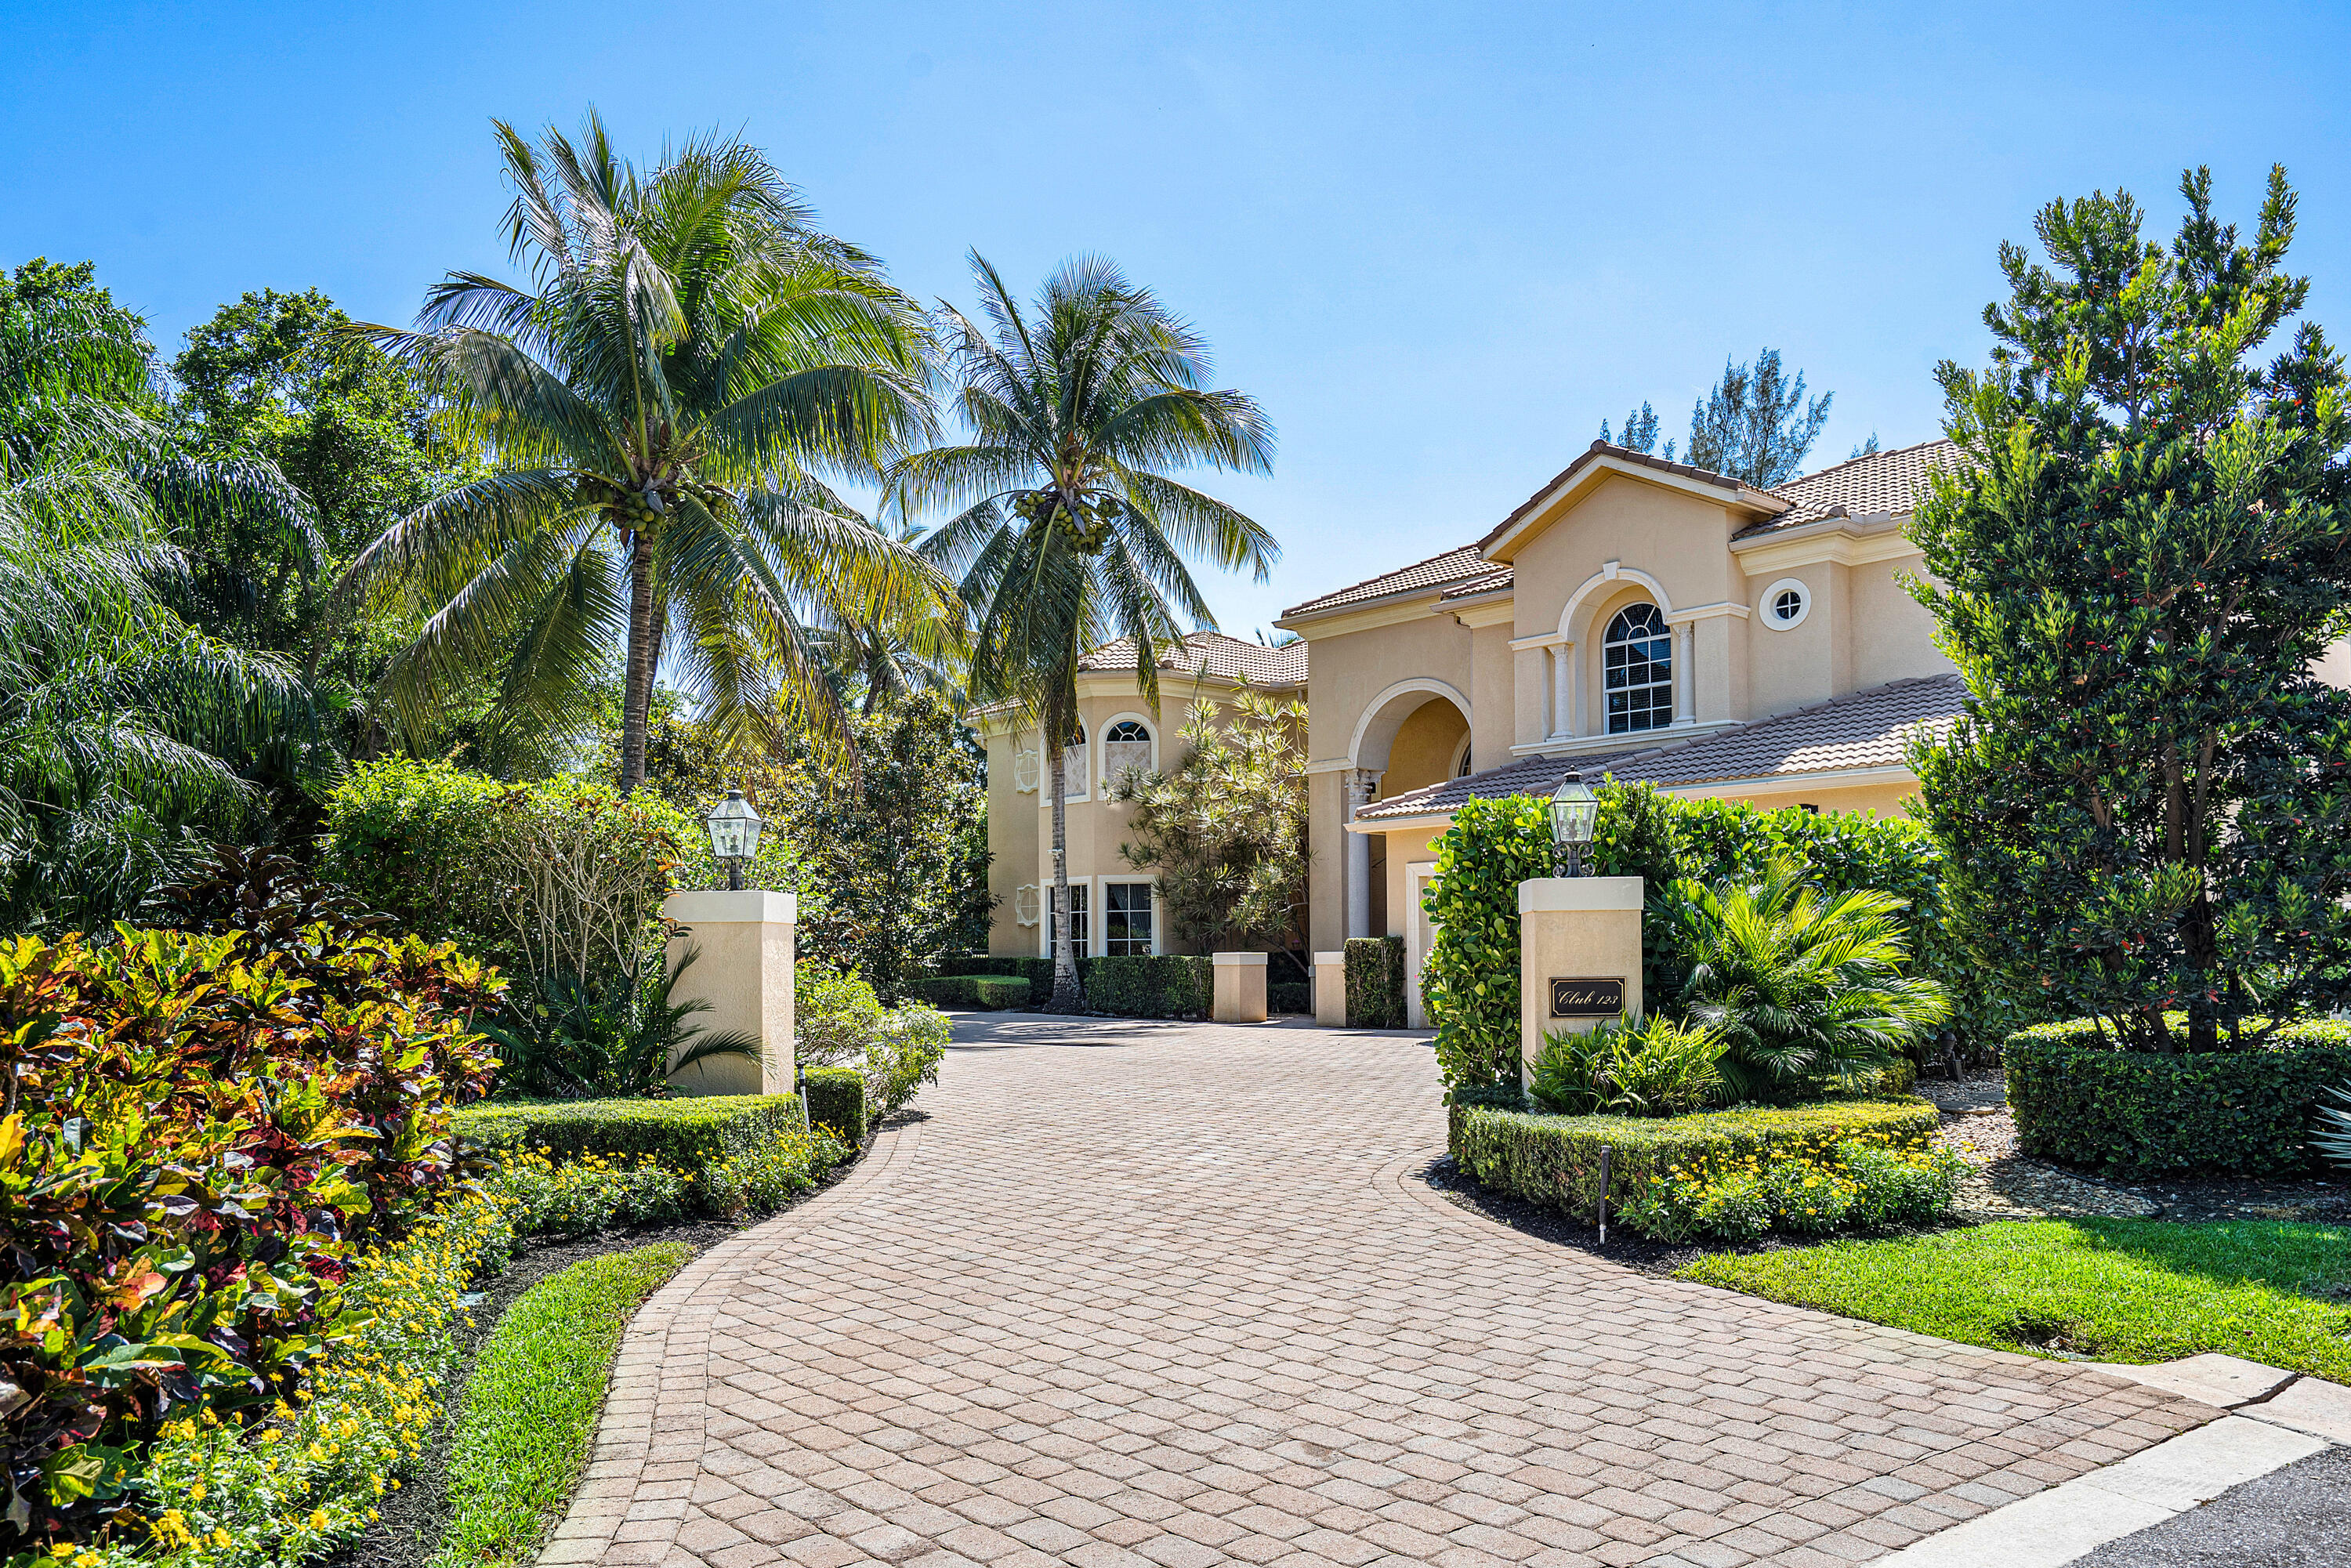 Situated on a private enclave, this spectacular home is located in desirable Ballenisles on a premium lot. This stunning home boasts over 7,000 square feet of living space with 6bd/6.2ba, elevator, 2 primary suites, and 3 car garage. Walk in the light and bright entryway leading to the airy living room. The living room offers custom built-ins, fireplace, exquisite soaring ceilings, and beautiful views of the backyard oasis. The great room has plenty of natural light, custom built-ins, and backyard views. The gourmet kitchen is well appointed with granite countertops, Thermador double ovens, Thermador gas range, Sub-zero fridge, and marble flooring. This home also features 2 primary suites, one on each level. The ground level primary suite offers wood floors, fireplace, built-ins, his/hers closets, view of the lush garden, and oversized additional sitting room. The primary ensuite is well appointed with dual vanities, Jacuzzi tub, and glass shower. The upper level primary suite is completely private with its own staircase to the retreat. This suite boasts stunning views of the lush landscape, fireplace, and separate den/office room. The primary ensuite offers a Jacuzzi tub with fabulous views, dual vanities, granite countertops, glass shower, and marble flooring. The custom fitted dressing room is spectacular and a must see! The second staircase leads to a generous loft space and 3 guest bedrooms. Step outside to your own private retreat. The tranquil backyard boasts a sparkling custom pool and spa with sun shelf, fruit trees, and stunning golf course views. The covered patio with fireplace is perfect for entertaining with custom electric screens and outdoor kitchen. Lounge poolside surrounded by beautiful lush gardens or relax on the pool sun shelf. This property is beautifully landscaped and offers accented outdoor lighting. Other features include complete impact protection, elevator, electric screening and shades, whole house gas generator, side courtyard, and three laundry rooms. Call for your private tour!